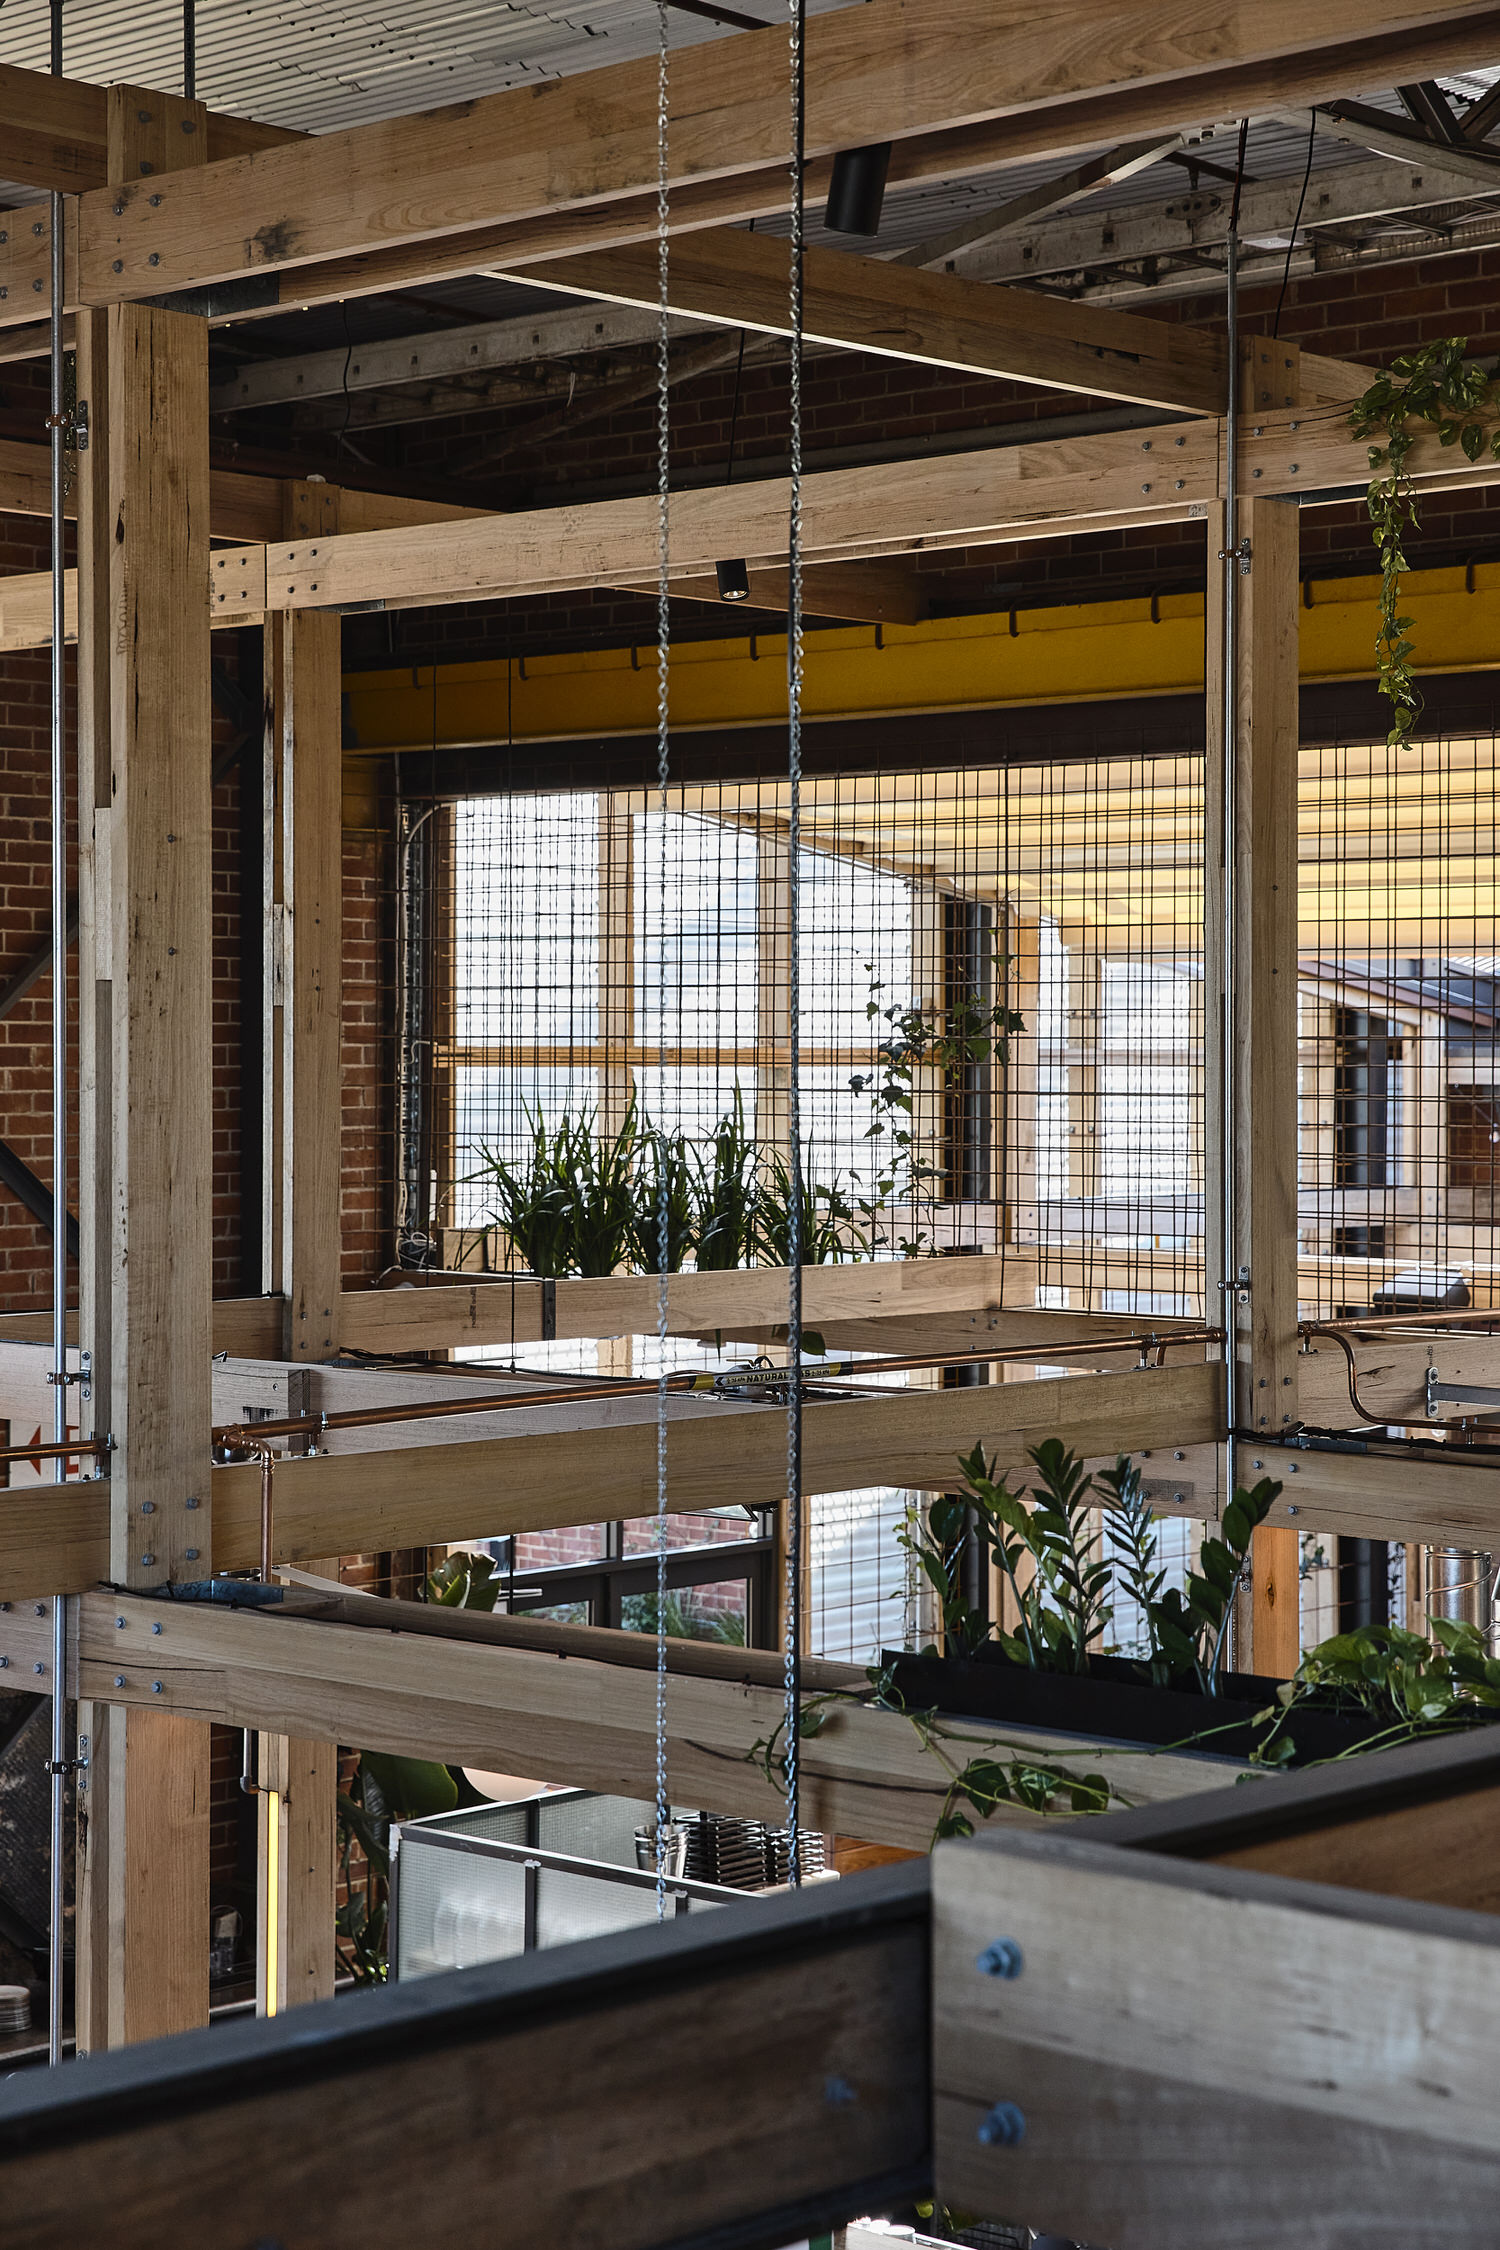 Studio Y Stomping Ground Melbourne Cigarette Factory Adaptive Reuse Photo Derek Swalwell Yellowtrace 11